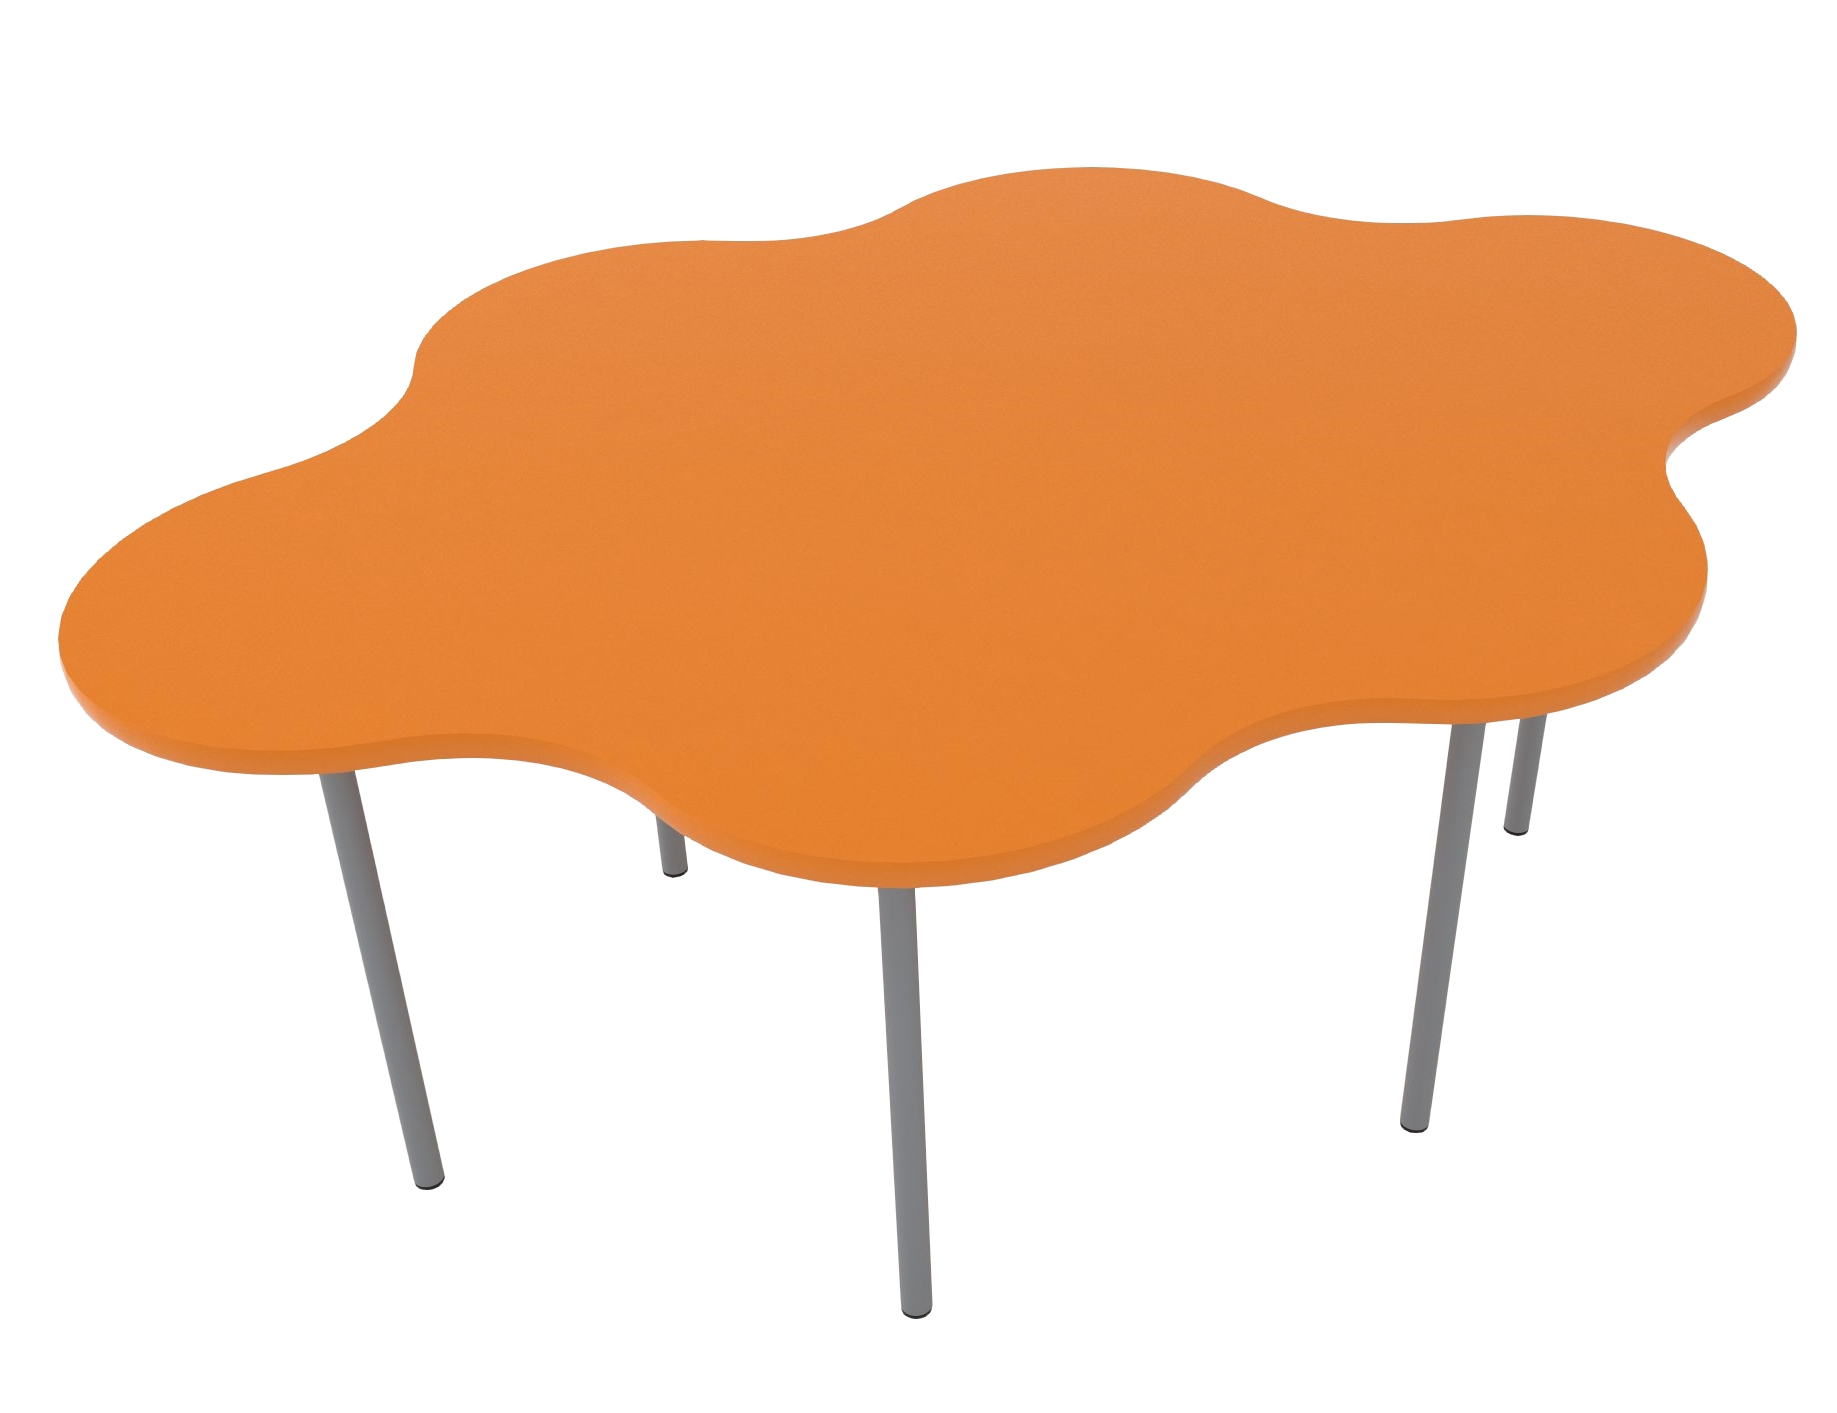 Buddy Hex Table.